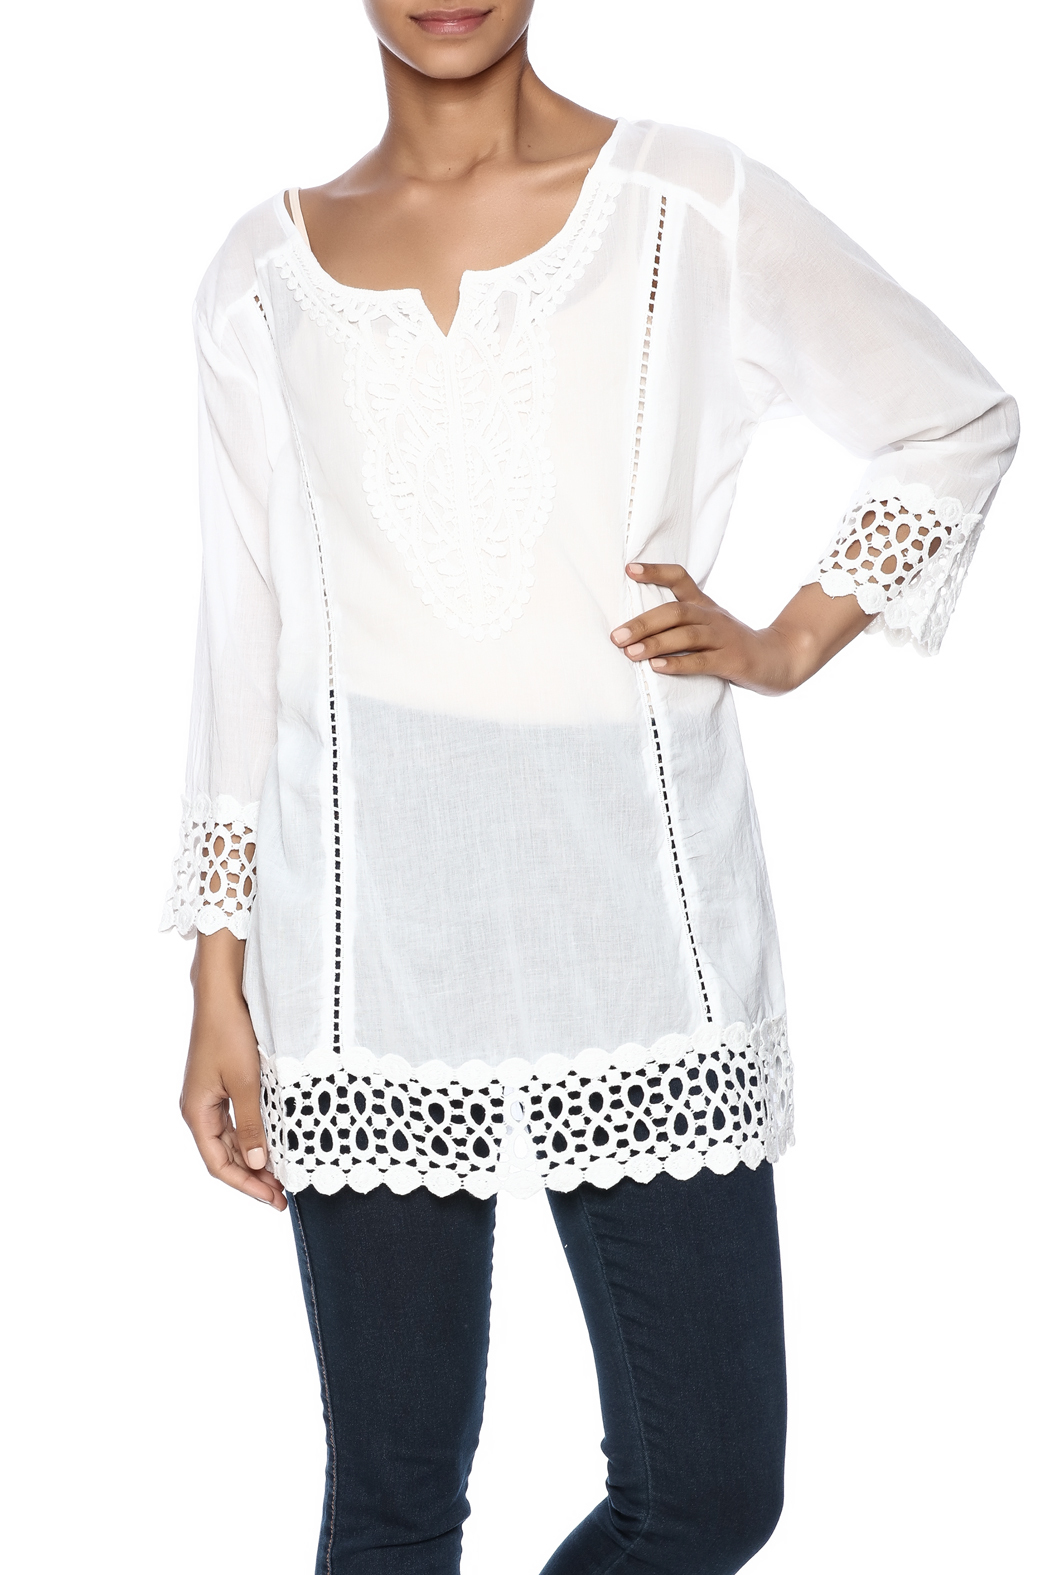 Fashque Gorgeous White Blouse From Florida By Ocean Bri Shoptiques Fash Black Front Cropped Image